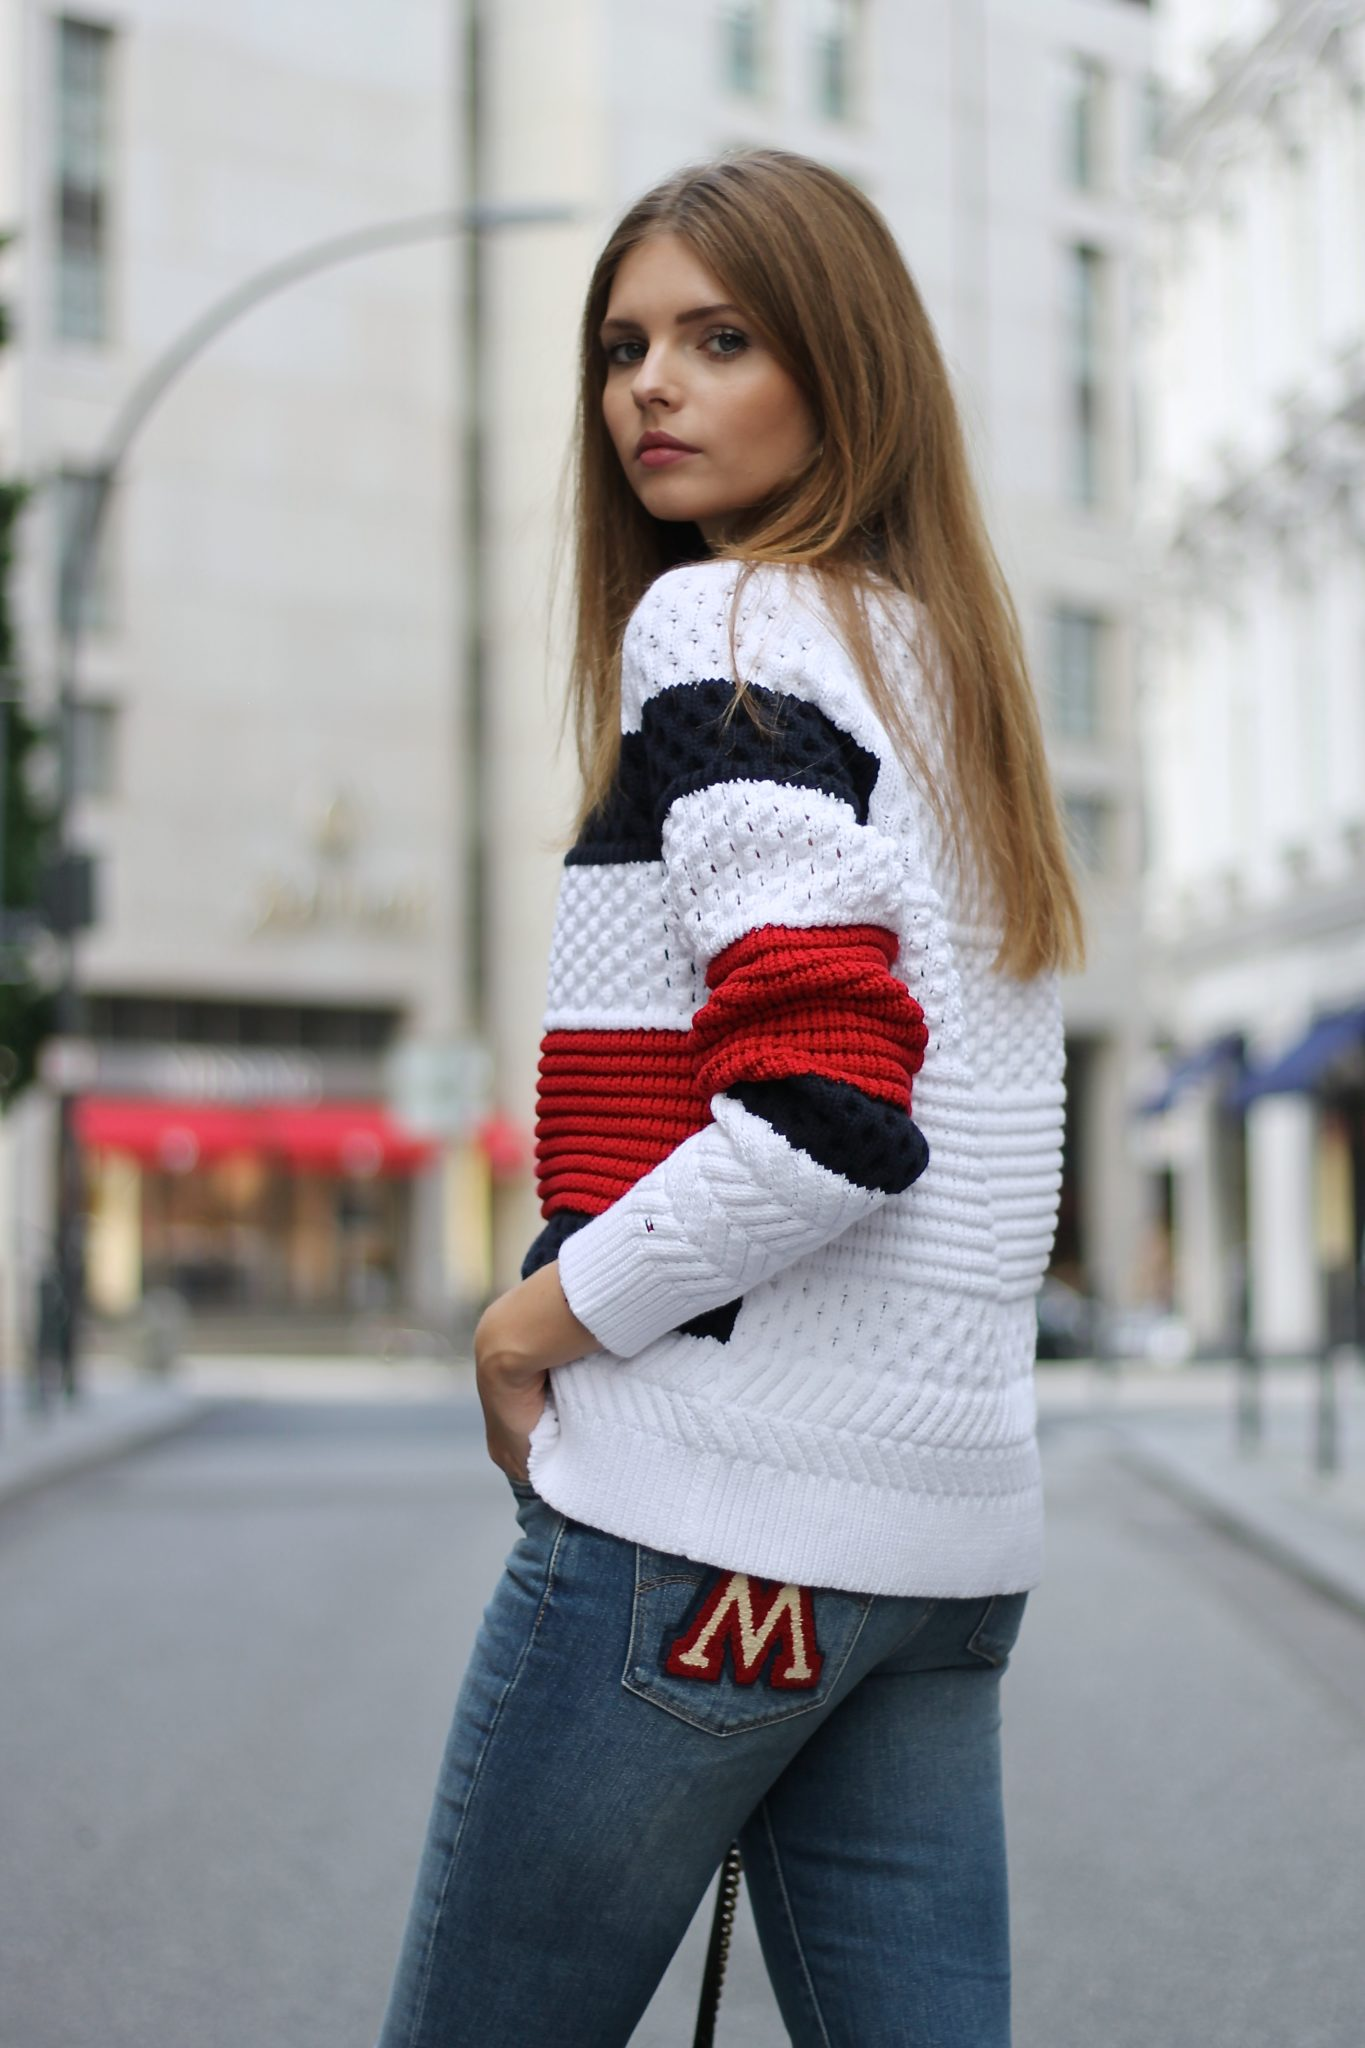 IMG 3043 - COLORFUL AUTUMN x TOMMY HILFIGER